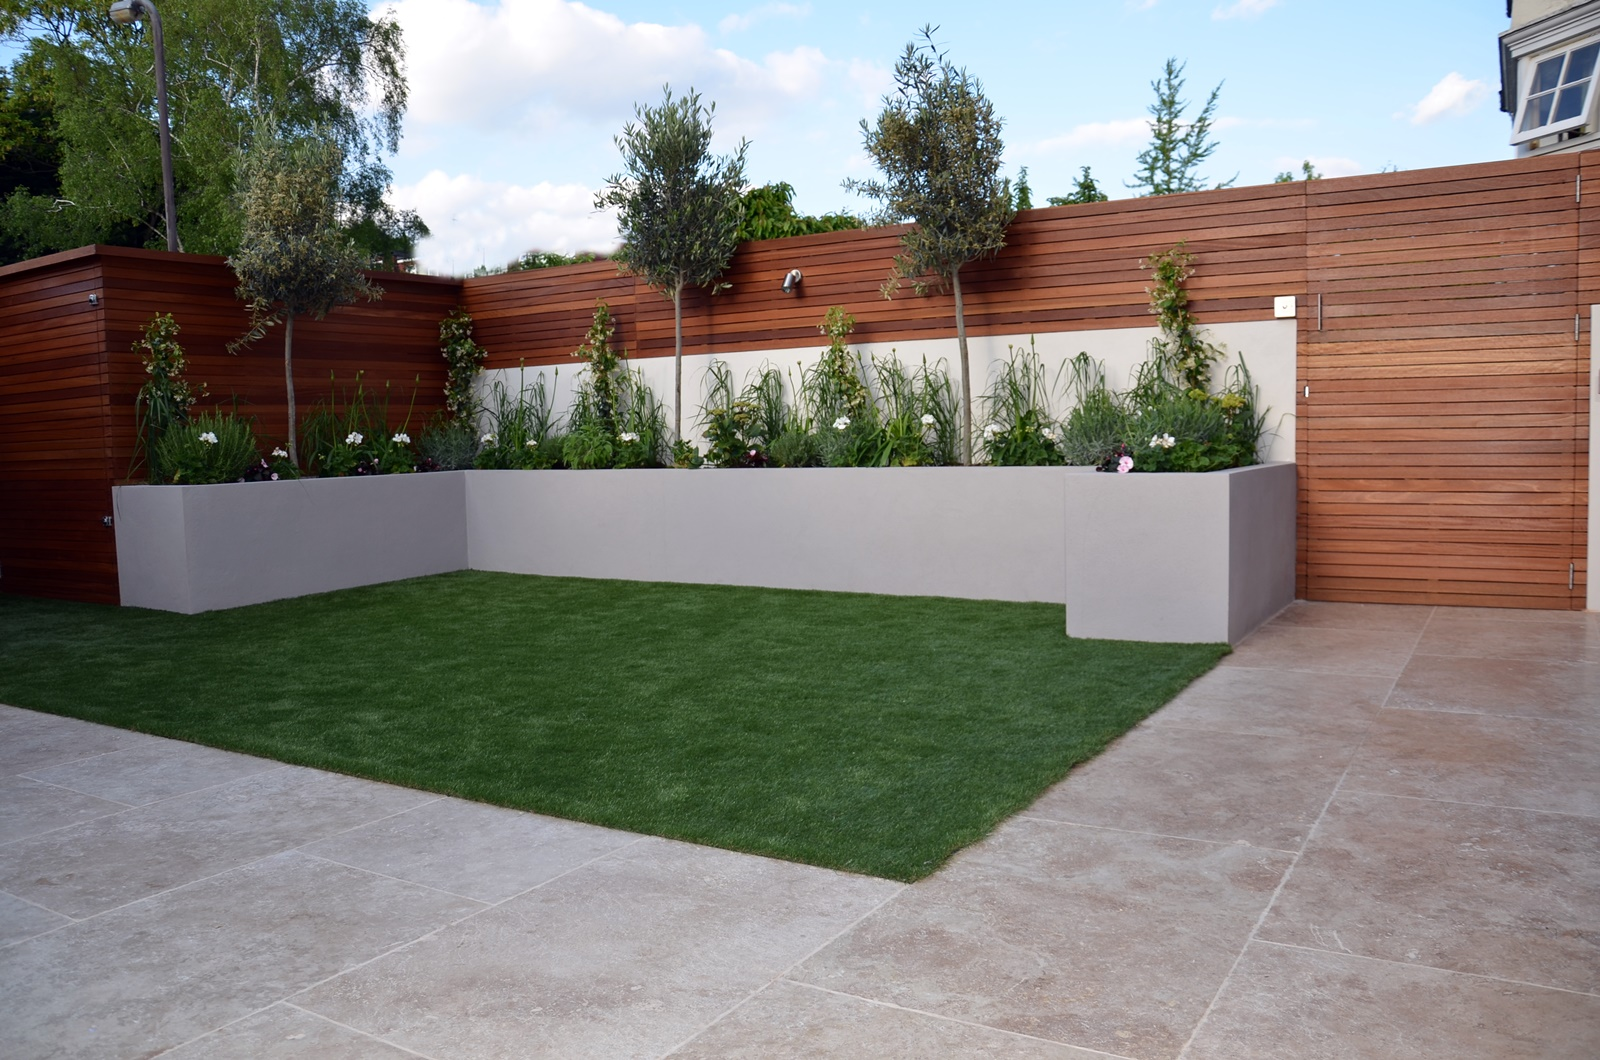 Modern garden design fulham chelsea clapham battersea for Paved garden designs